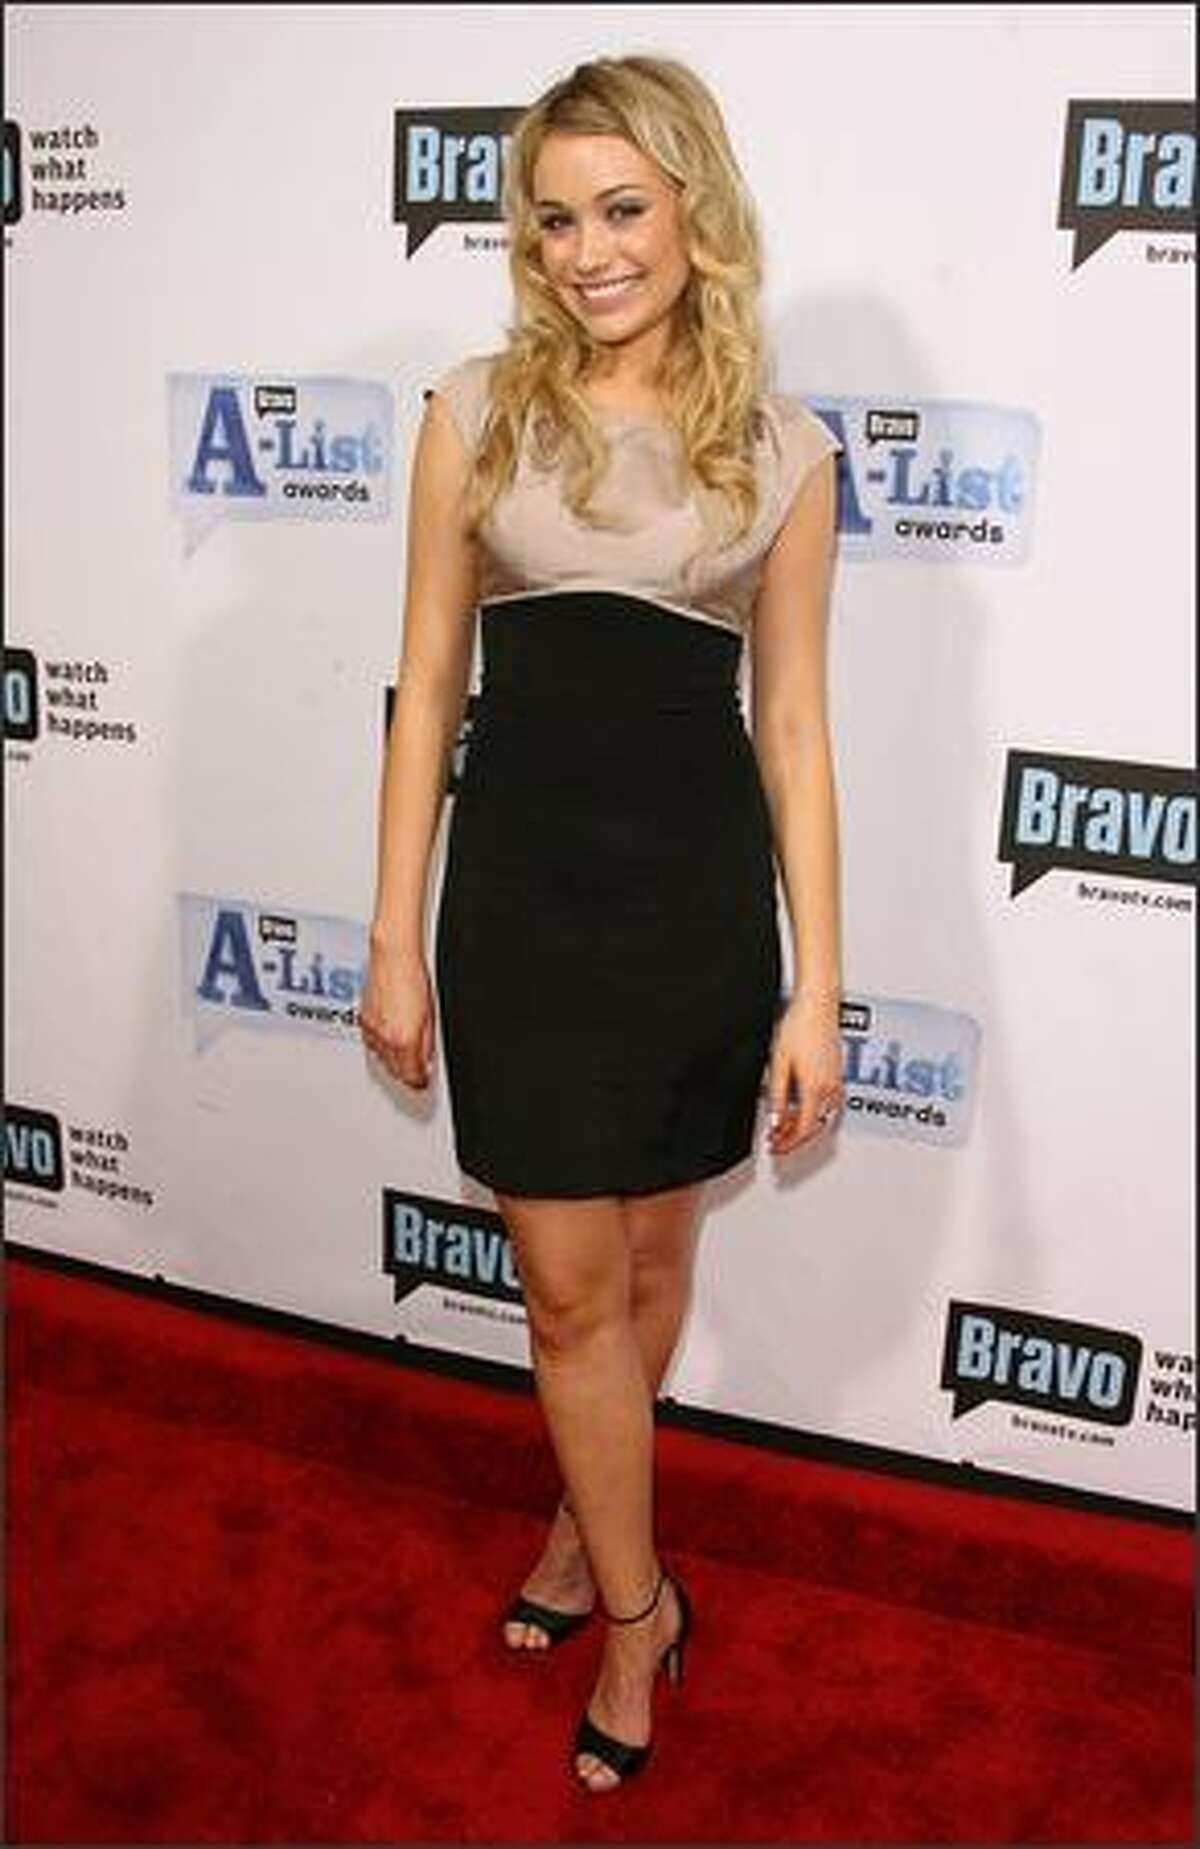 """Actress Katrina Bowden attends Bravo's First """"A-List Awards"""" show at the Hammerstein Ballroom in New York."""